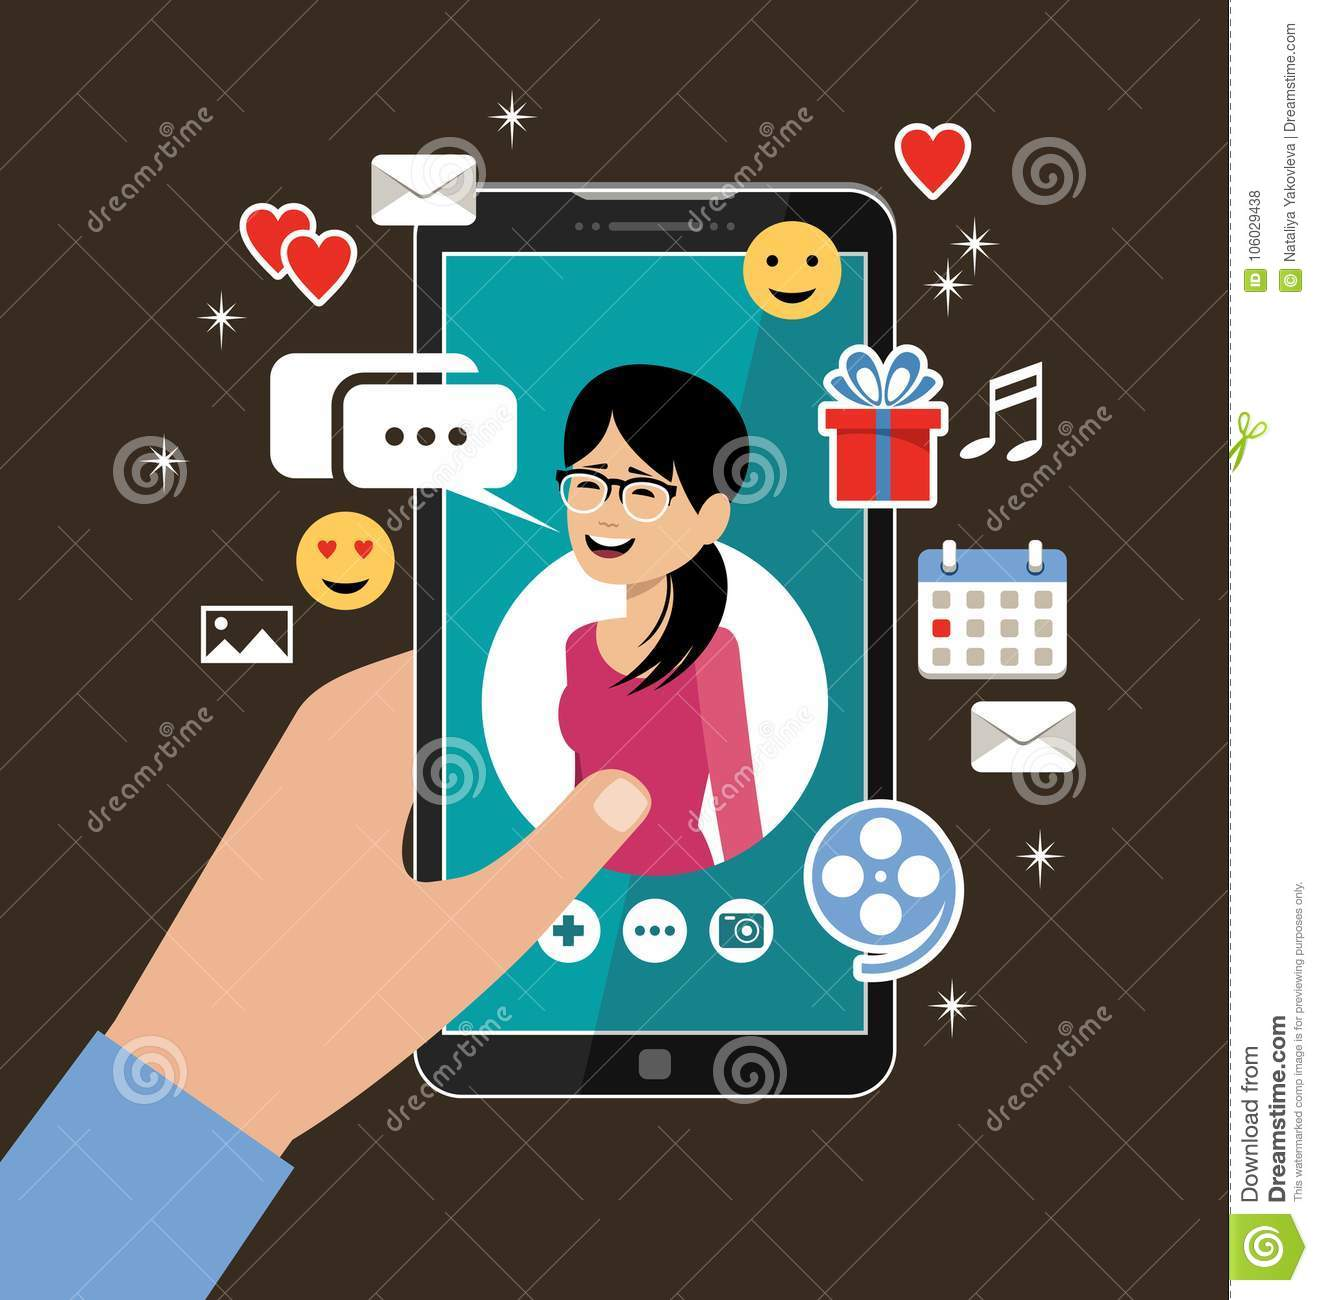 qocial online dating